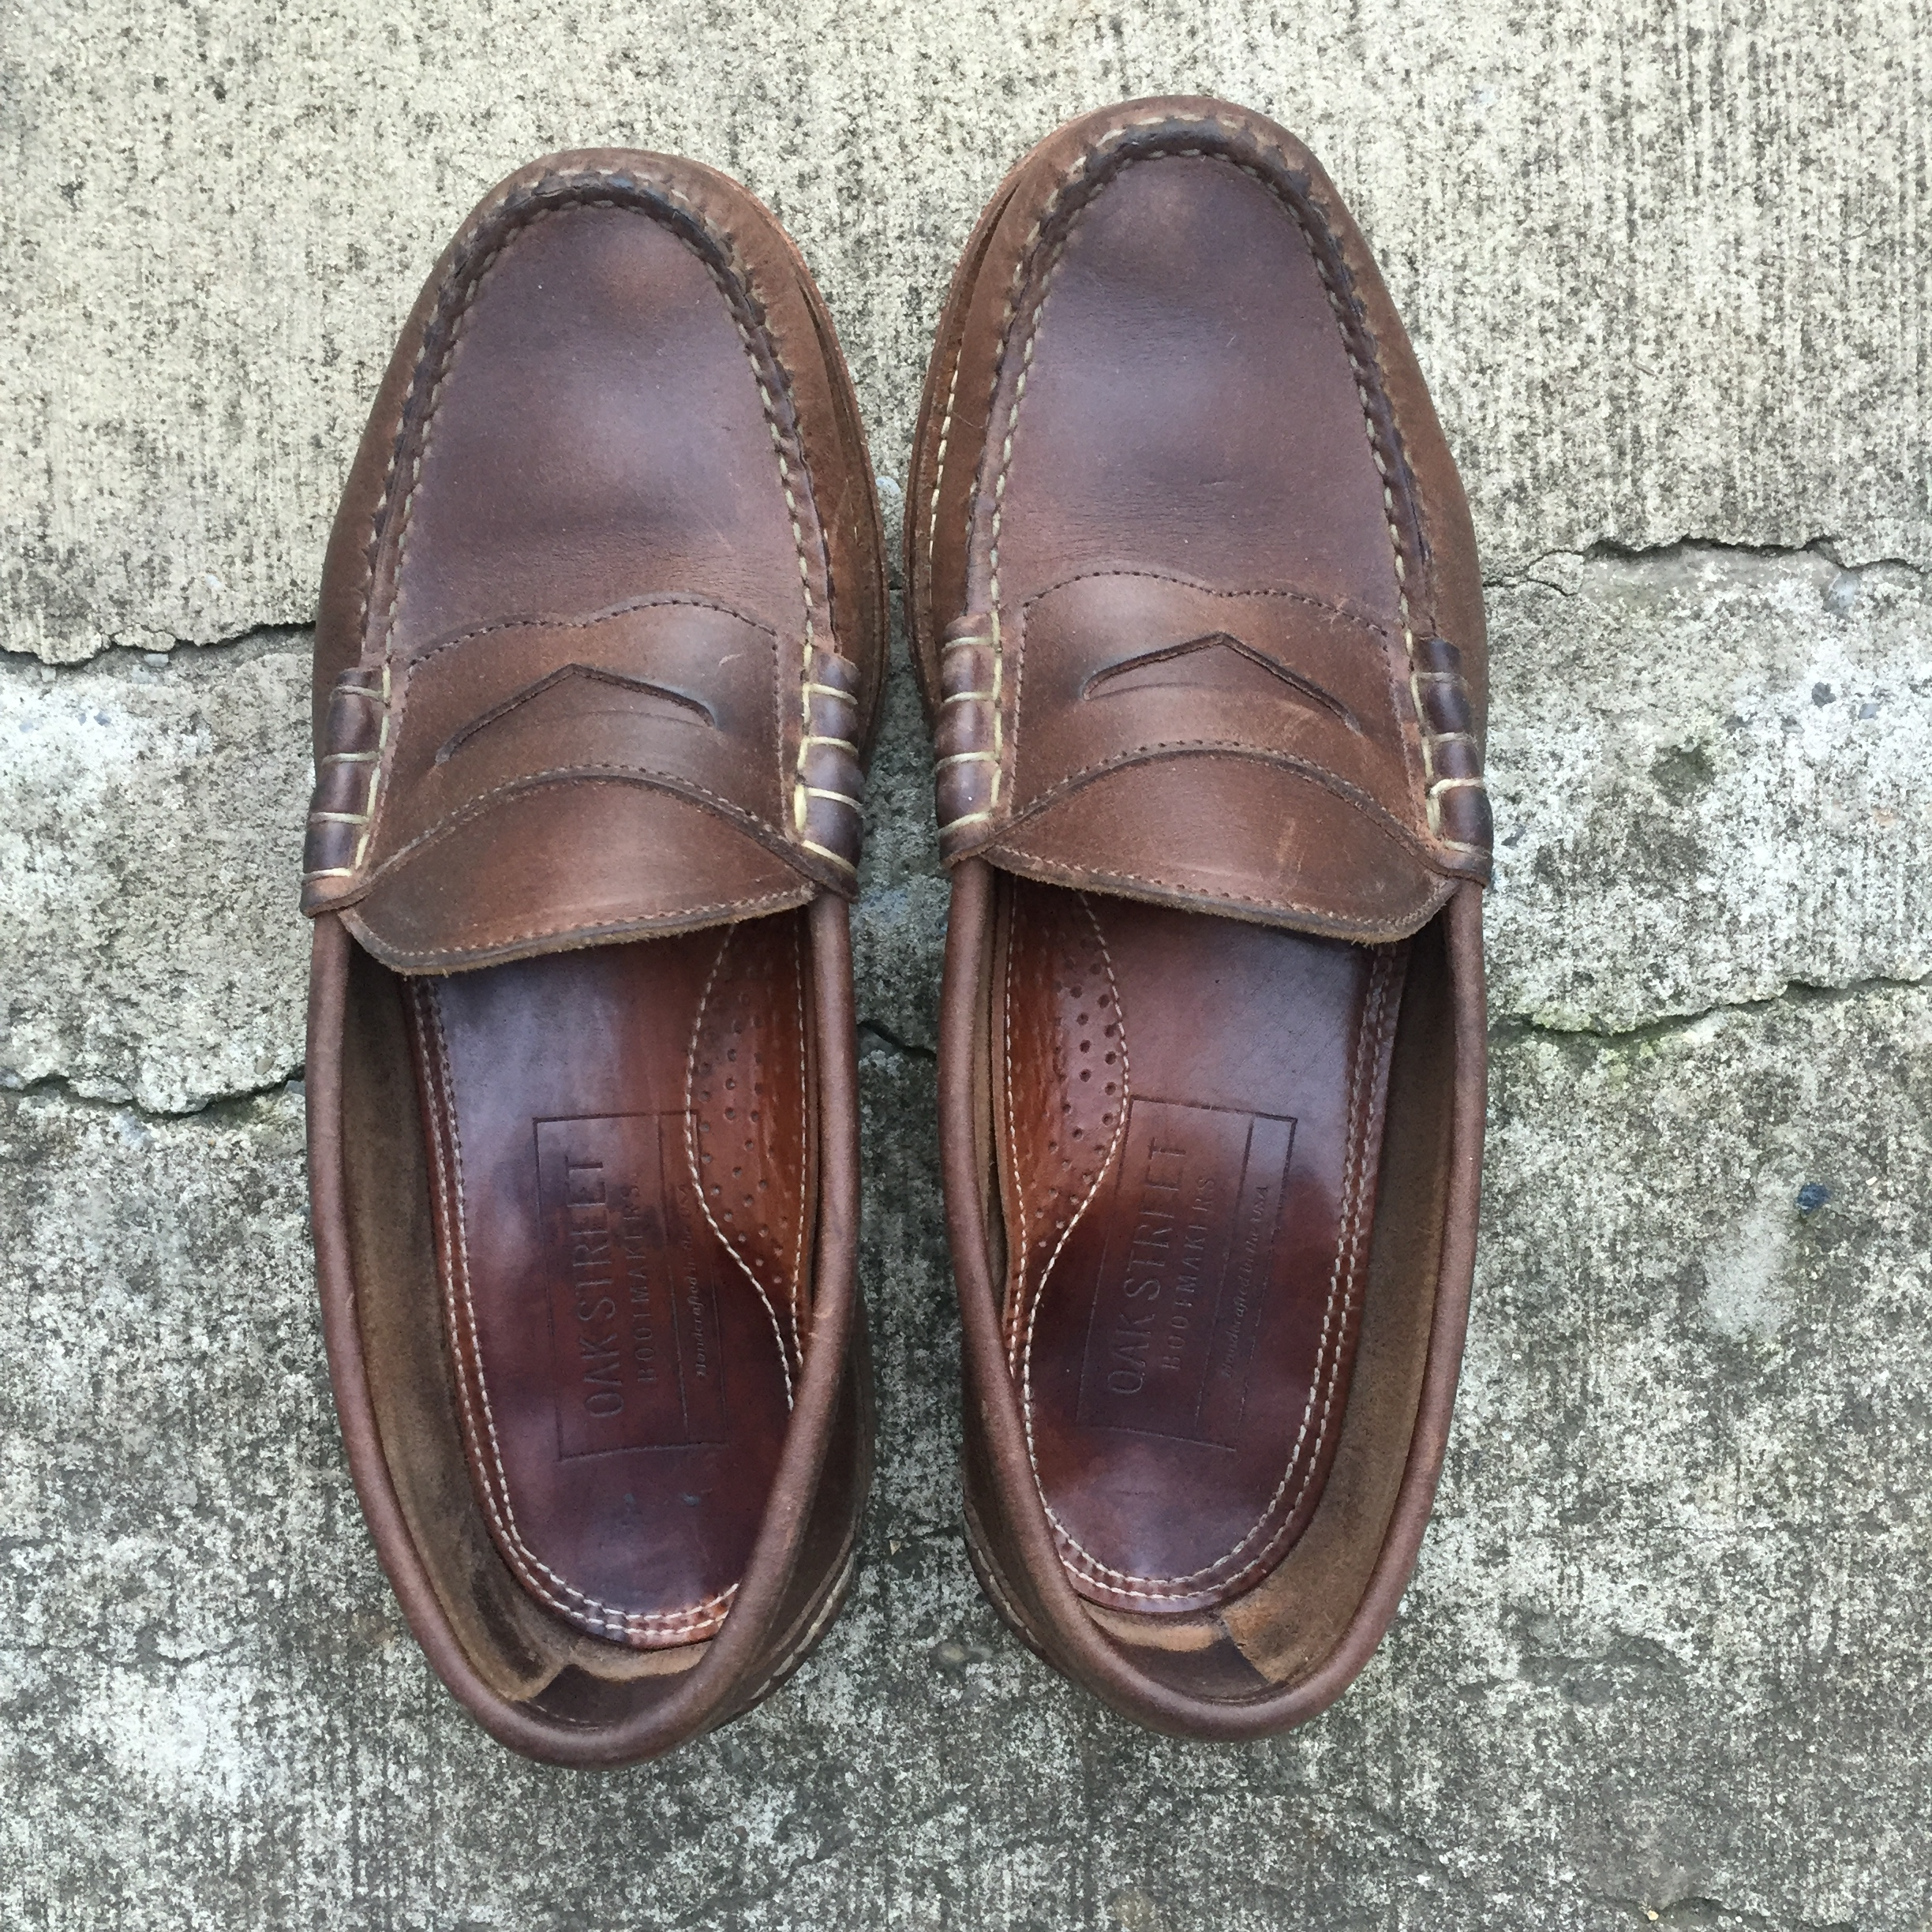 f95c6f1d930 Oak Street Bootmakers Natural Beefroll Penny Loafer